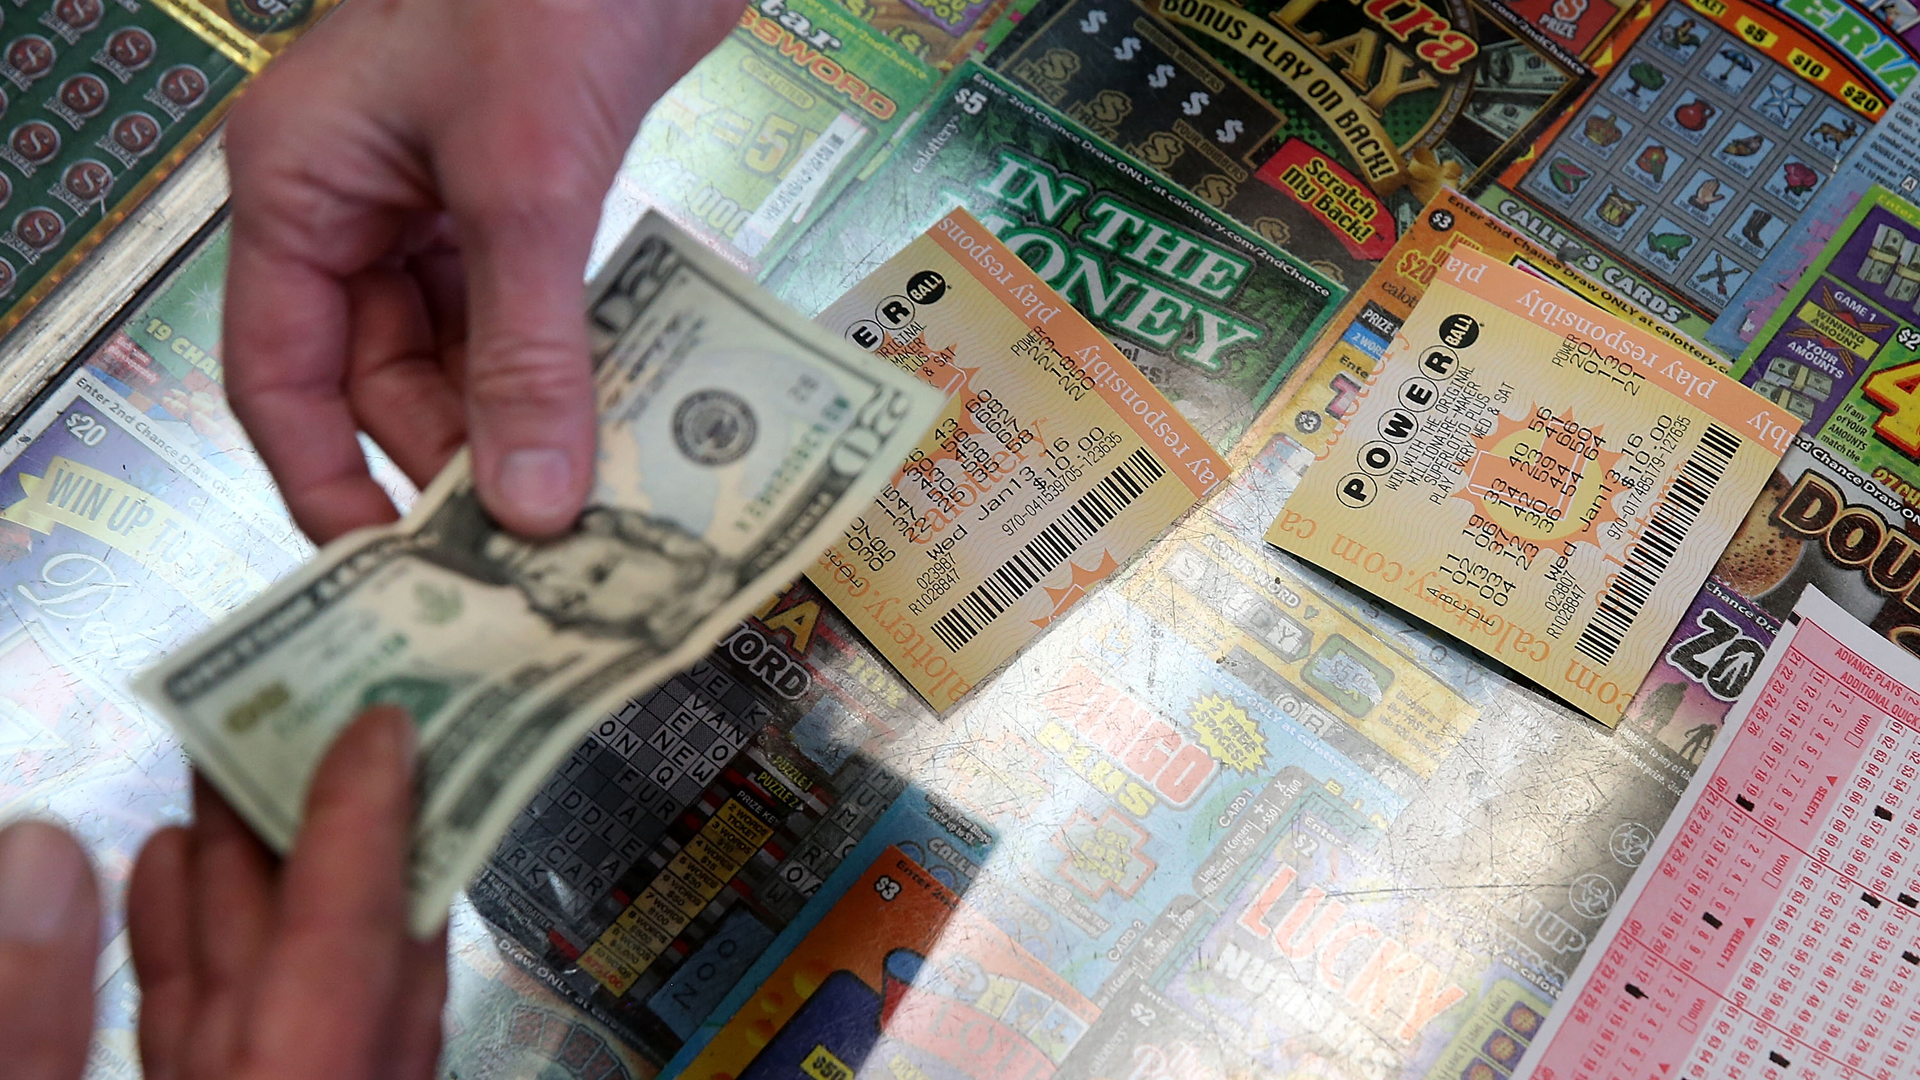 California lottery tickets are seen in a file photo. (Credit: Justin Sullivan/Getty Images)